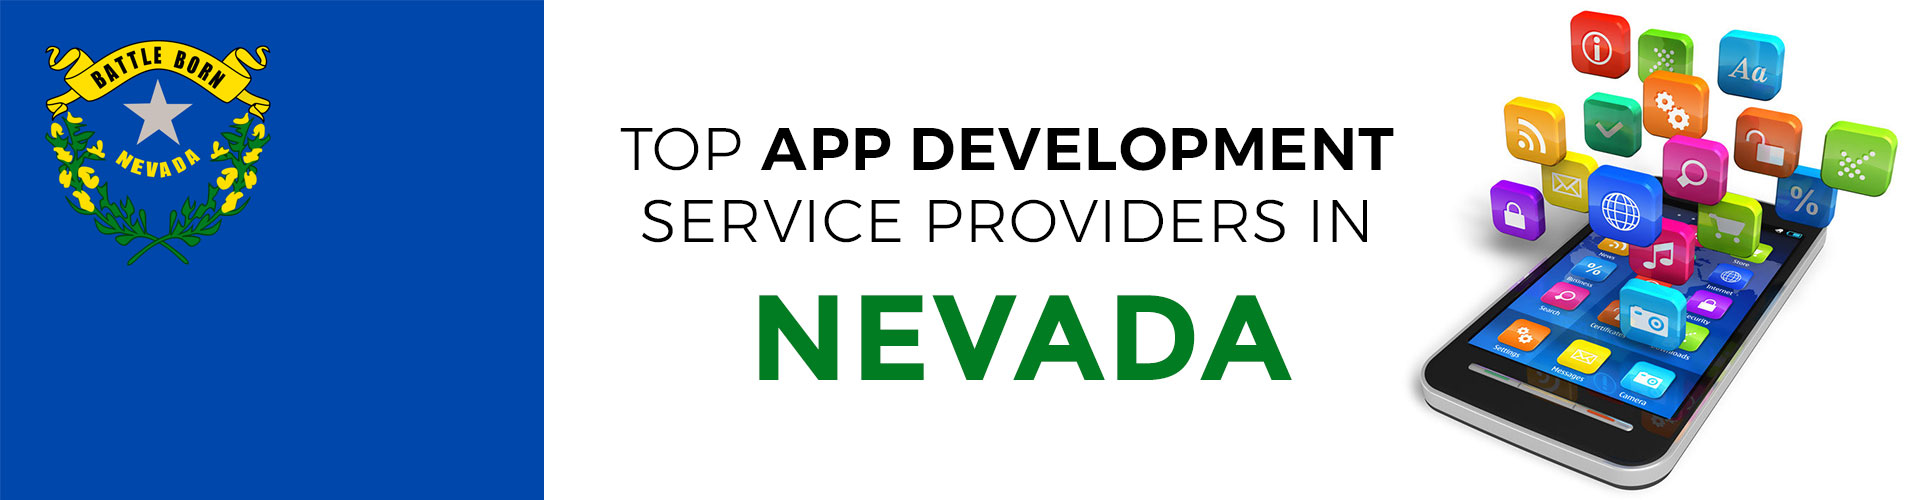 mobile app development company nevada